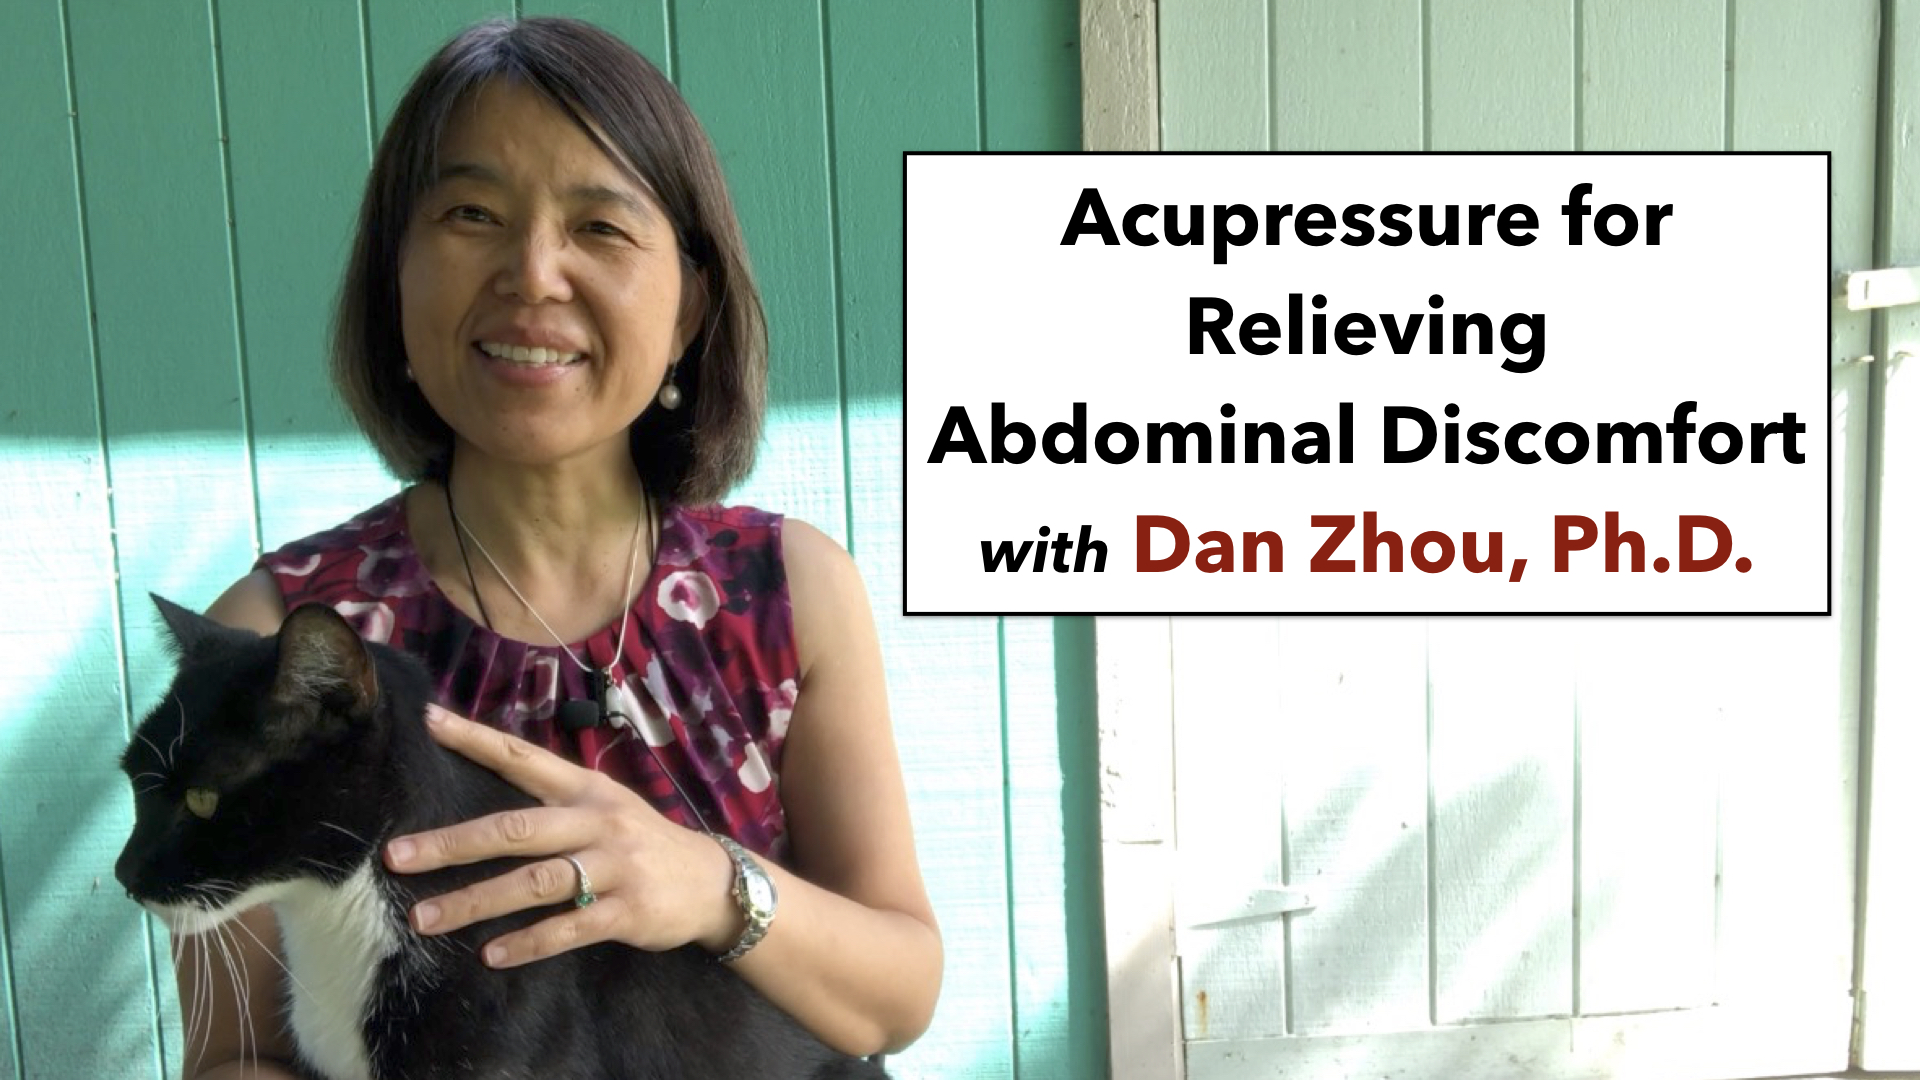 How to sooth abdominal discomfort with acupressure